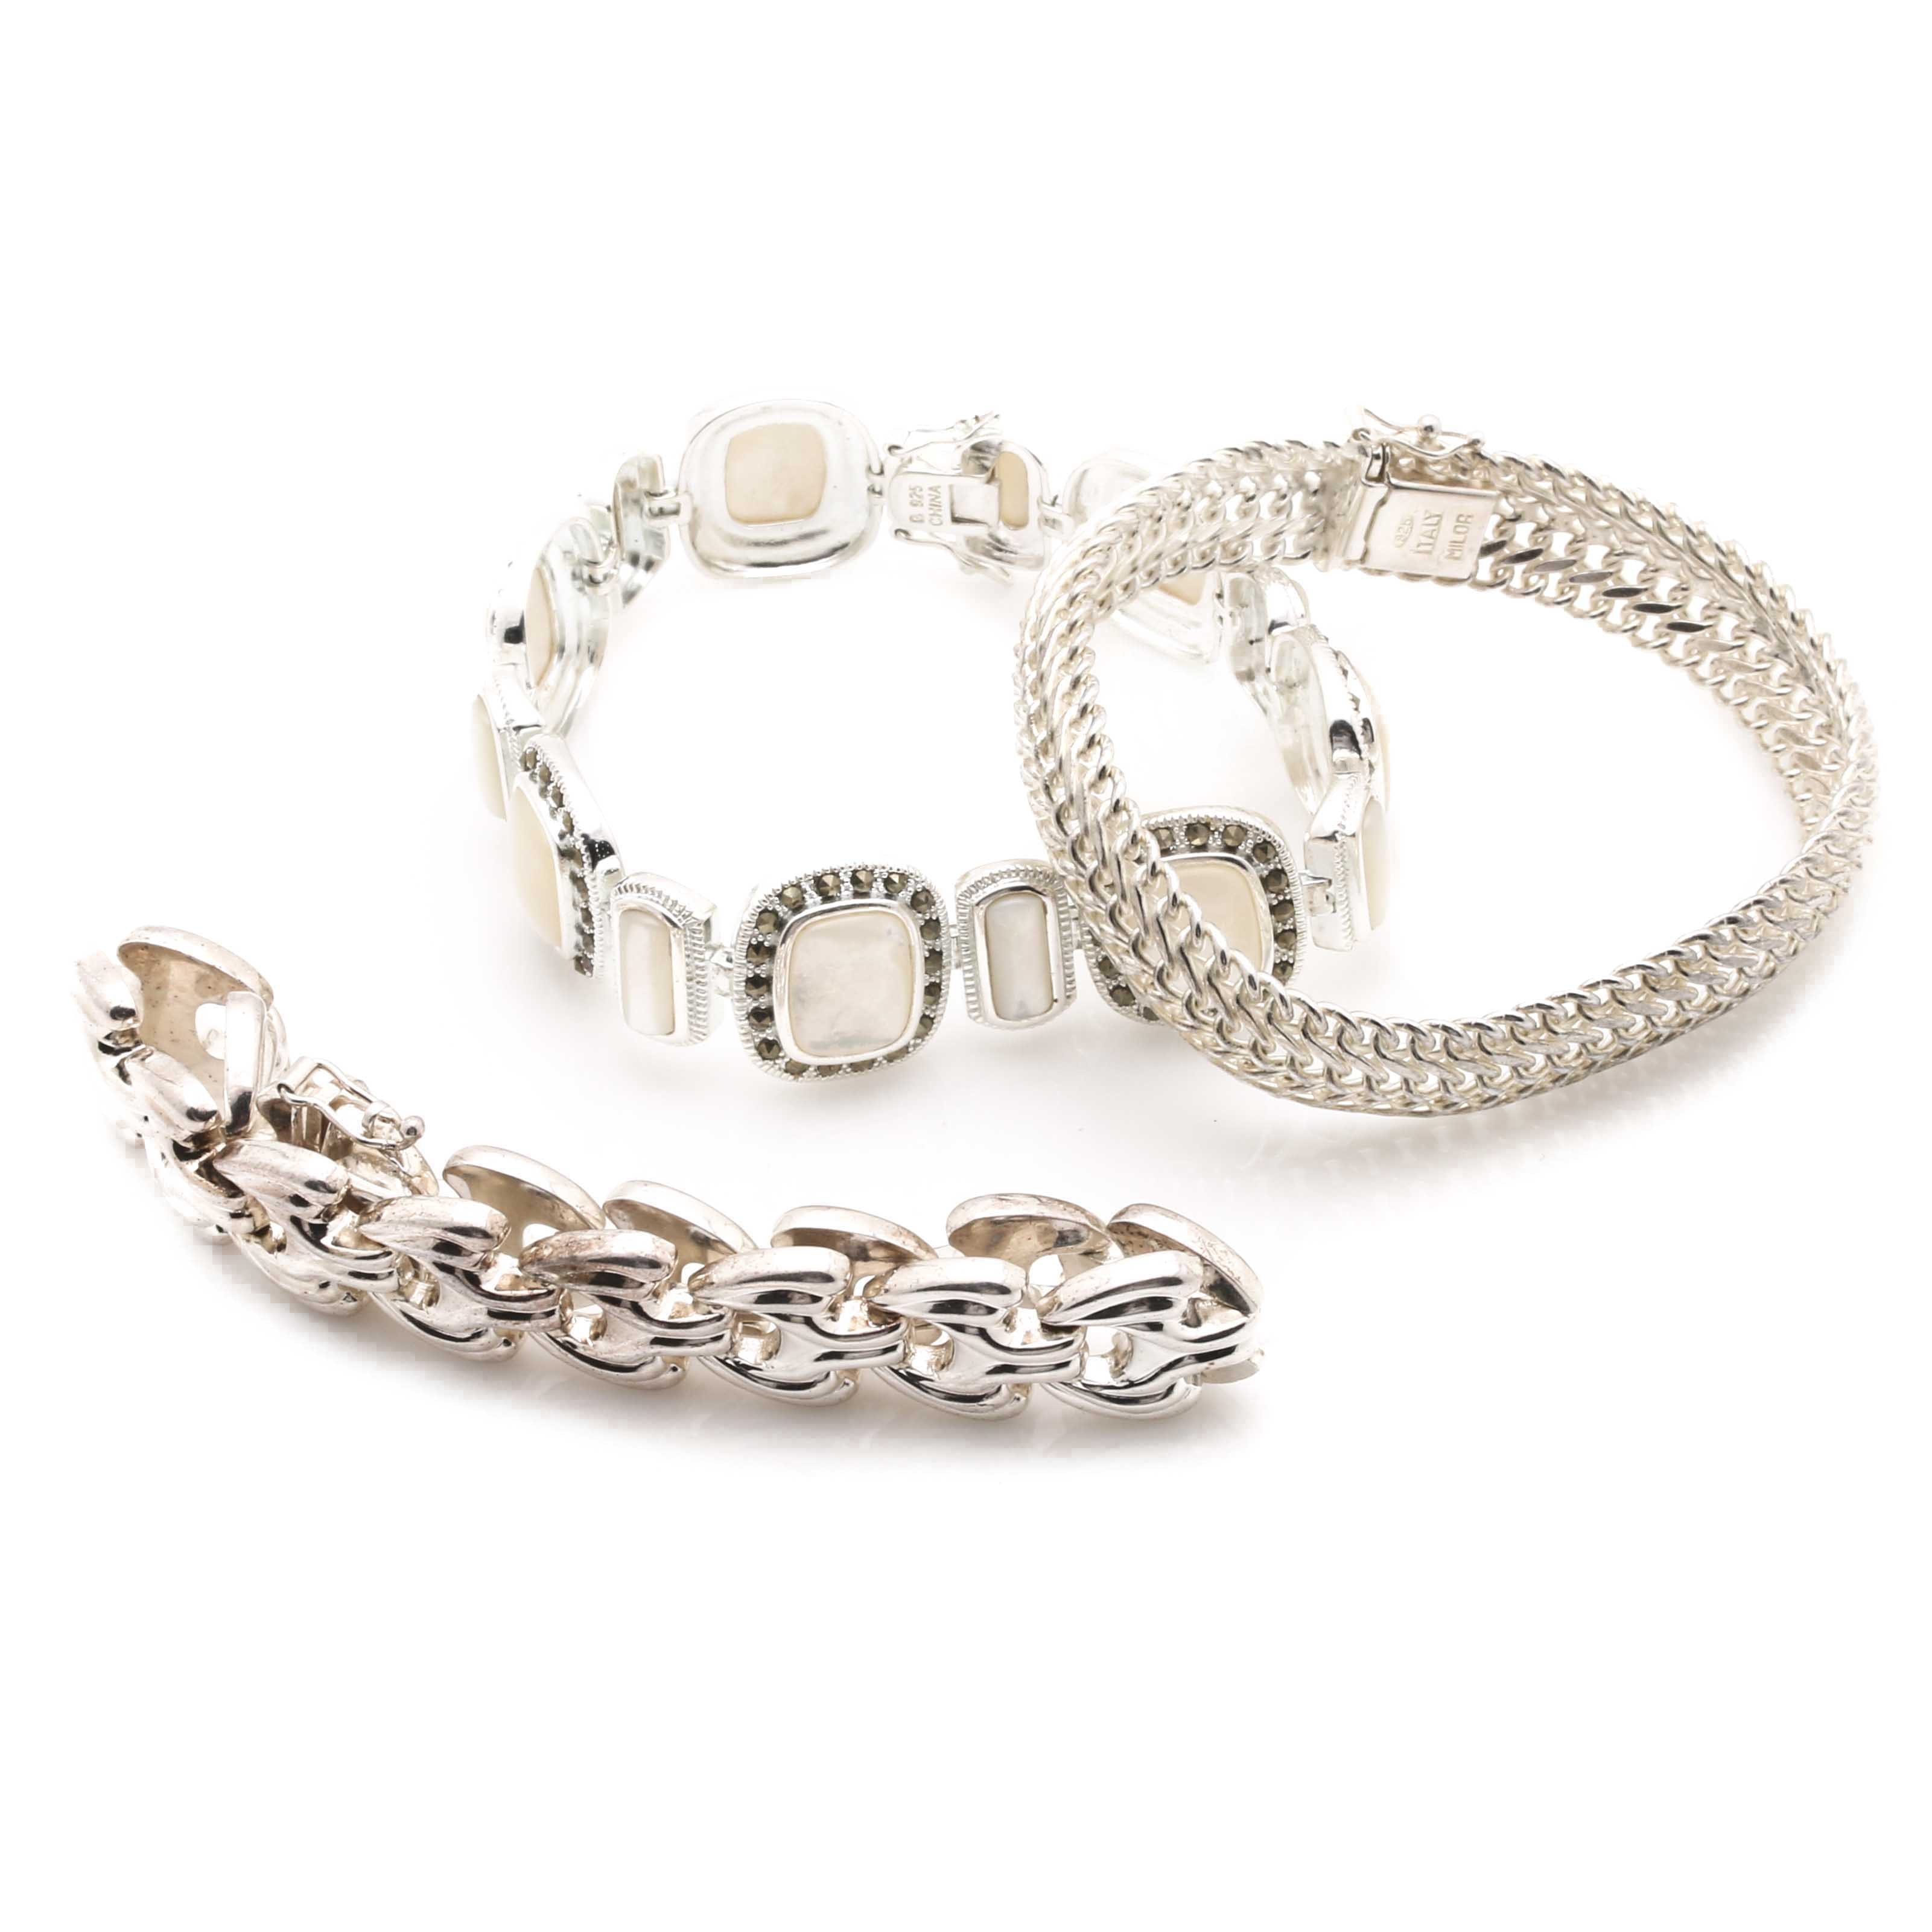 Sterling Silver Bracelets With Mother of Pearl and Marcasite